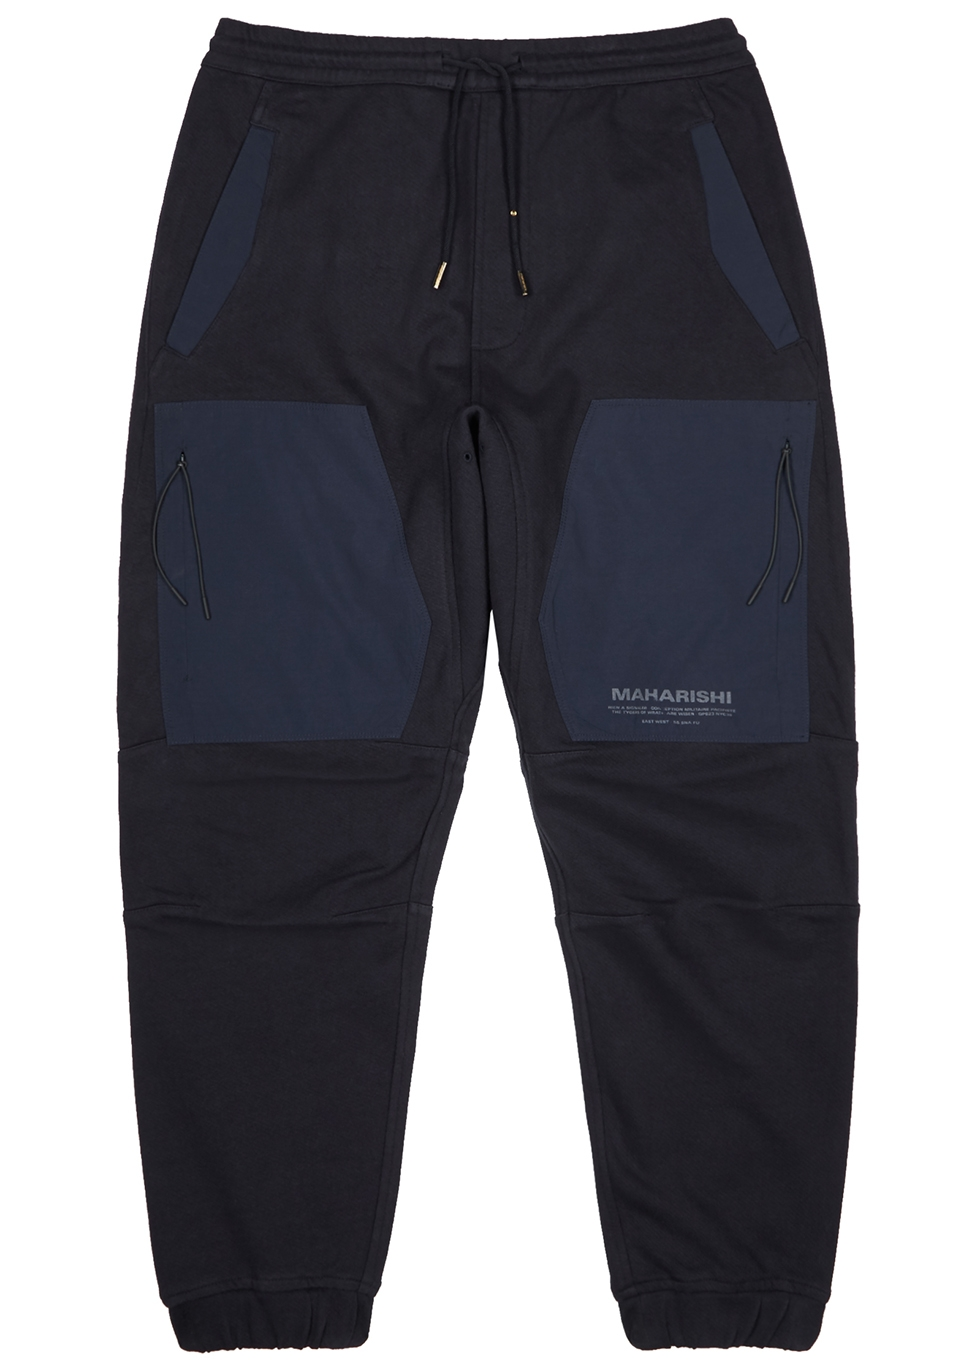 Navy cotton and recycled nylon sweatpants - maharishi